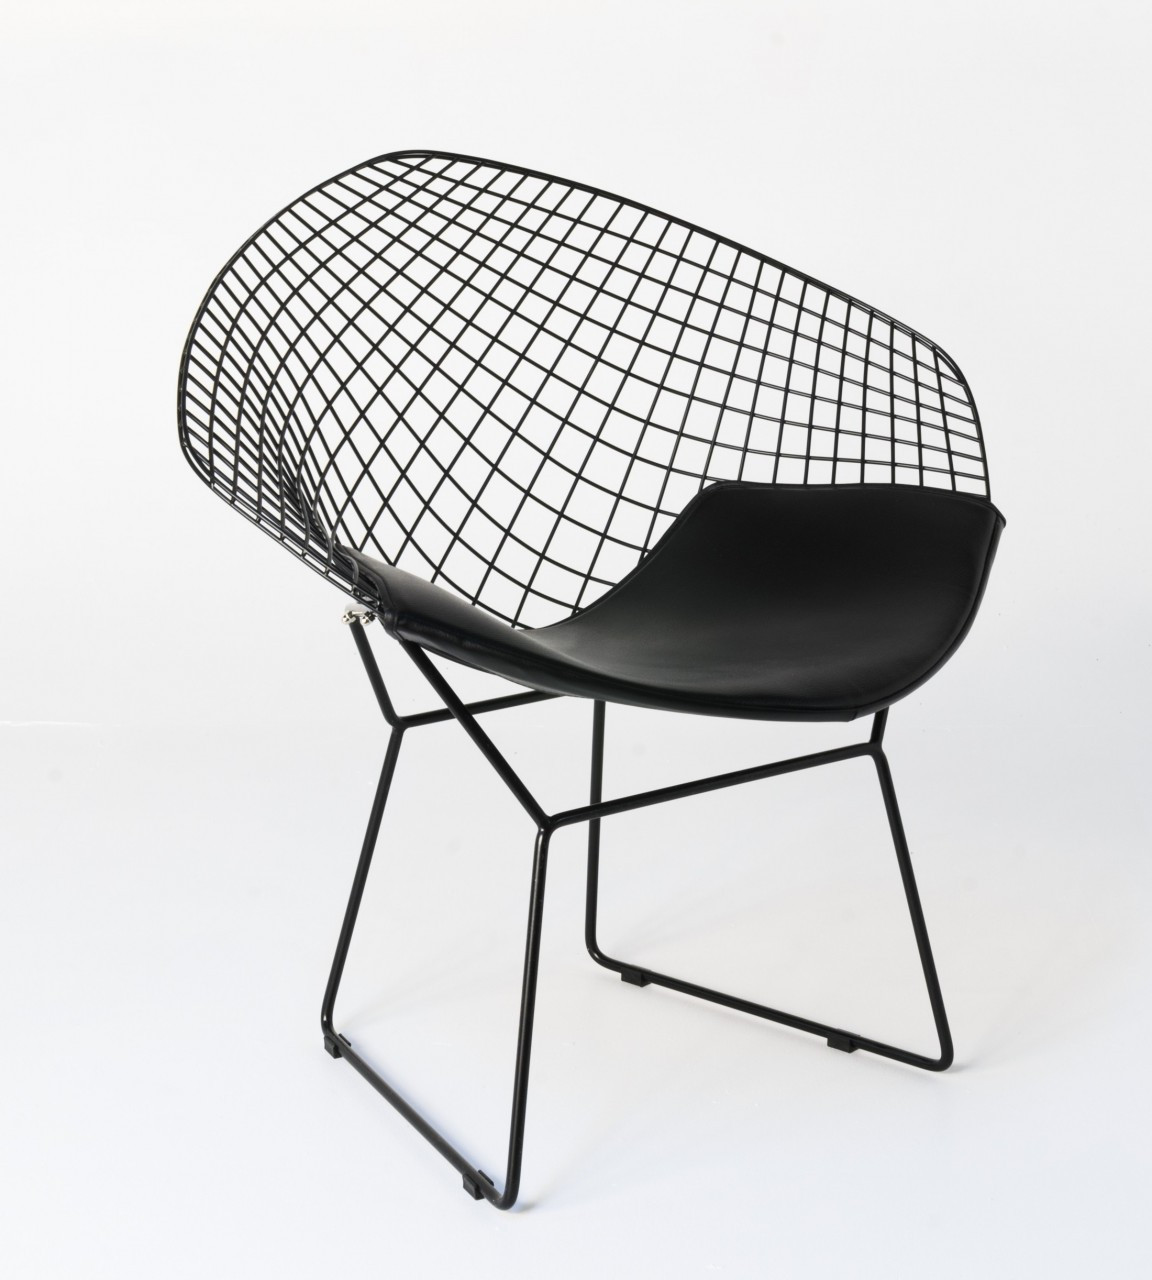 replica diamond chair replica harry bertoia diamond chair black powdercoated frame. Black Bedroom Furniture Sets. Home Design Ideas